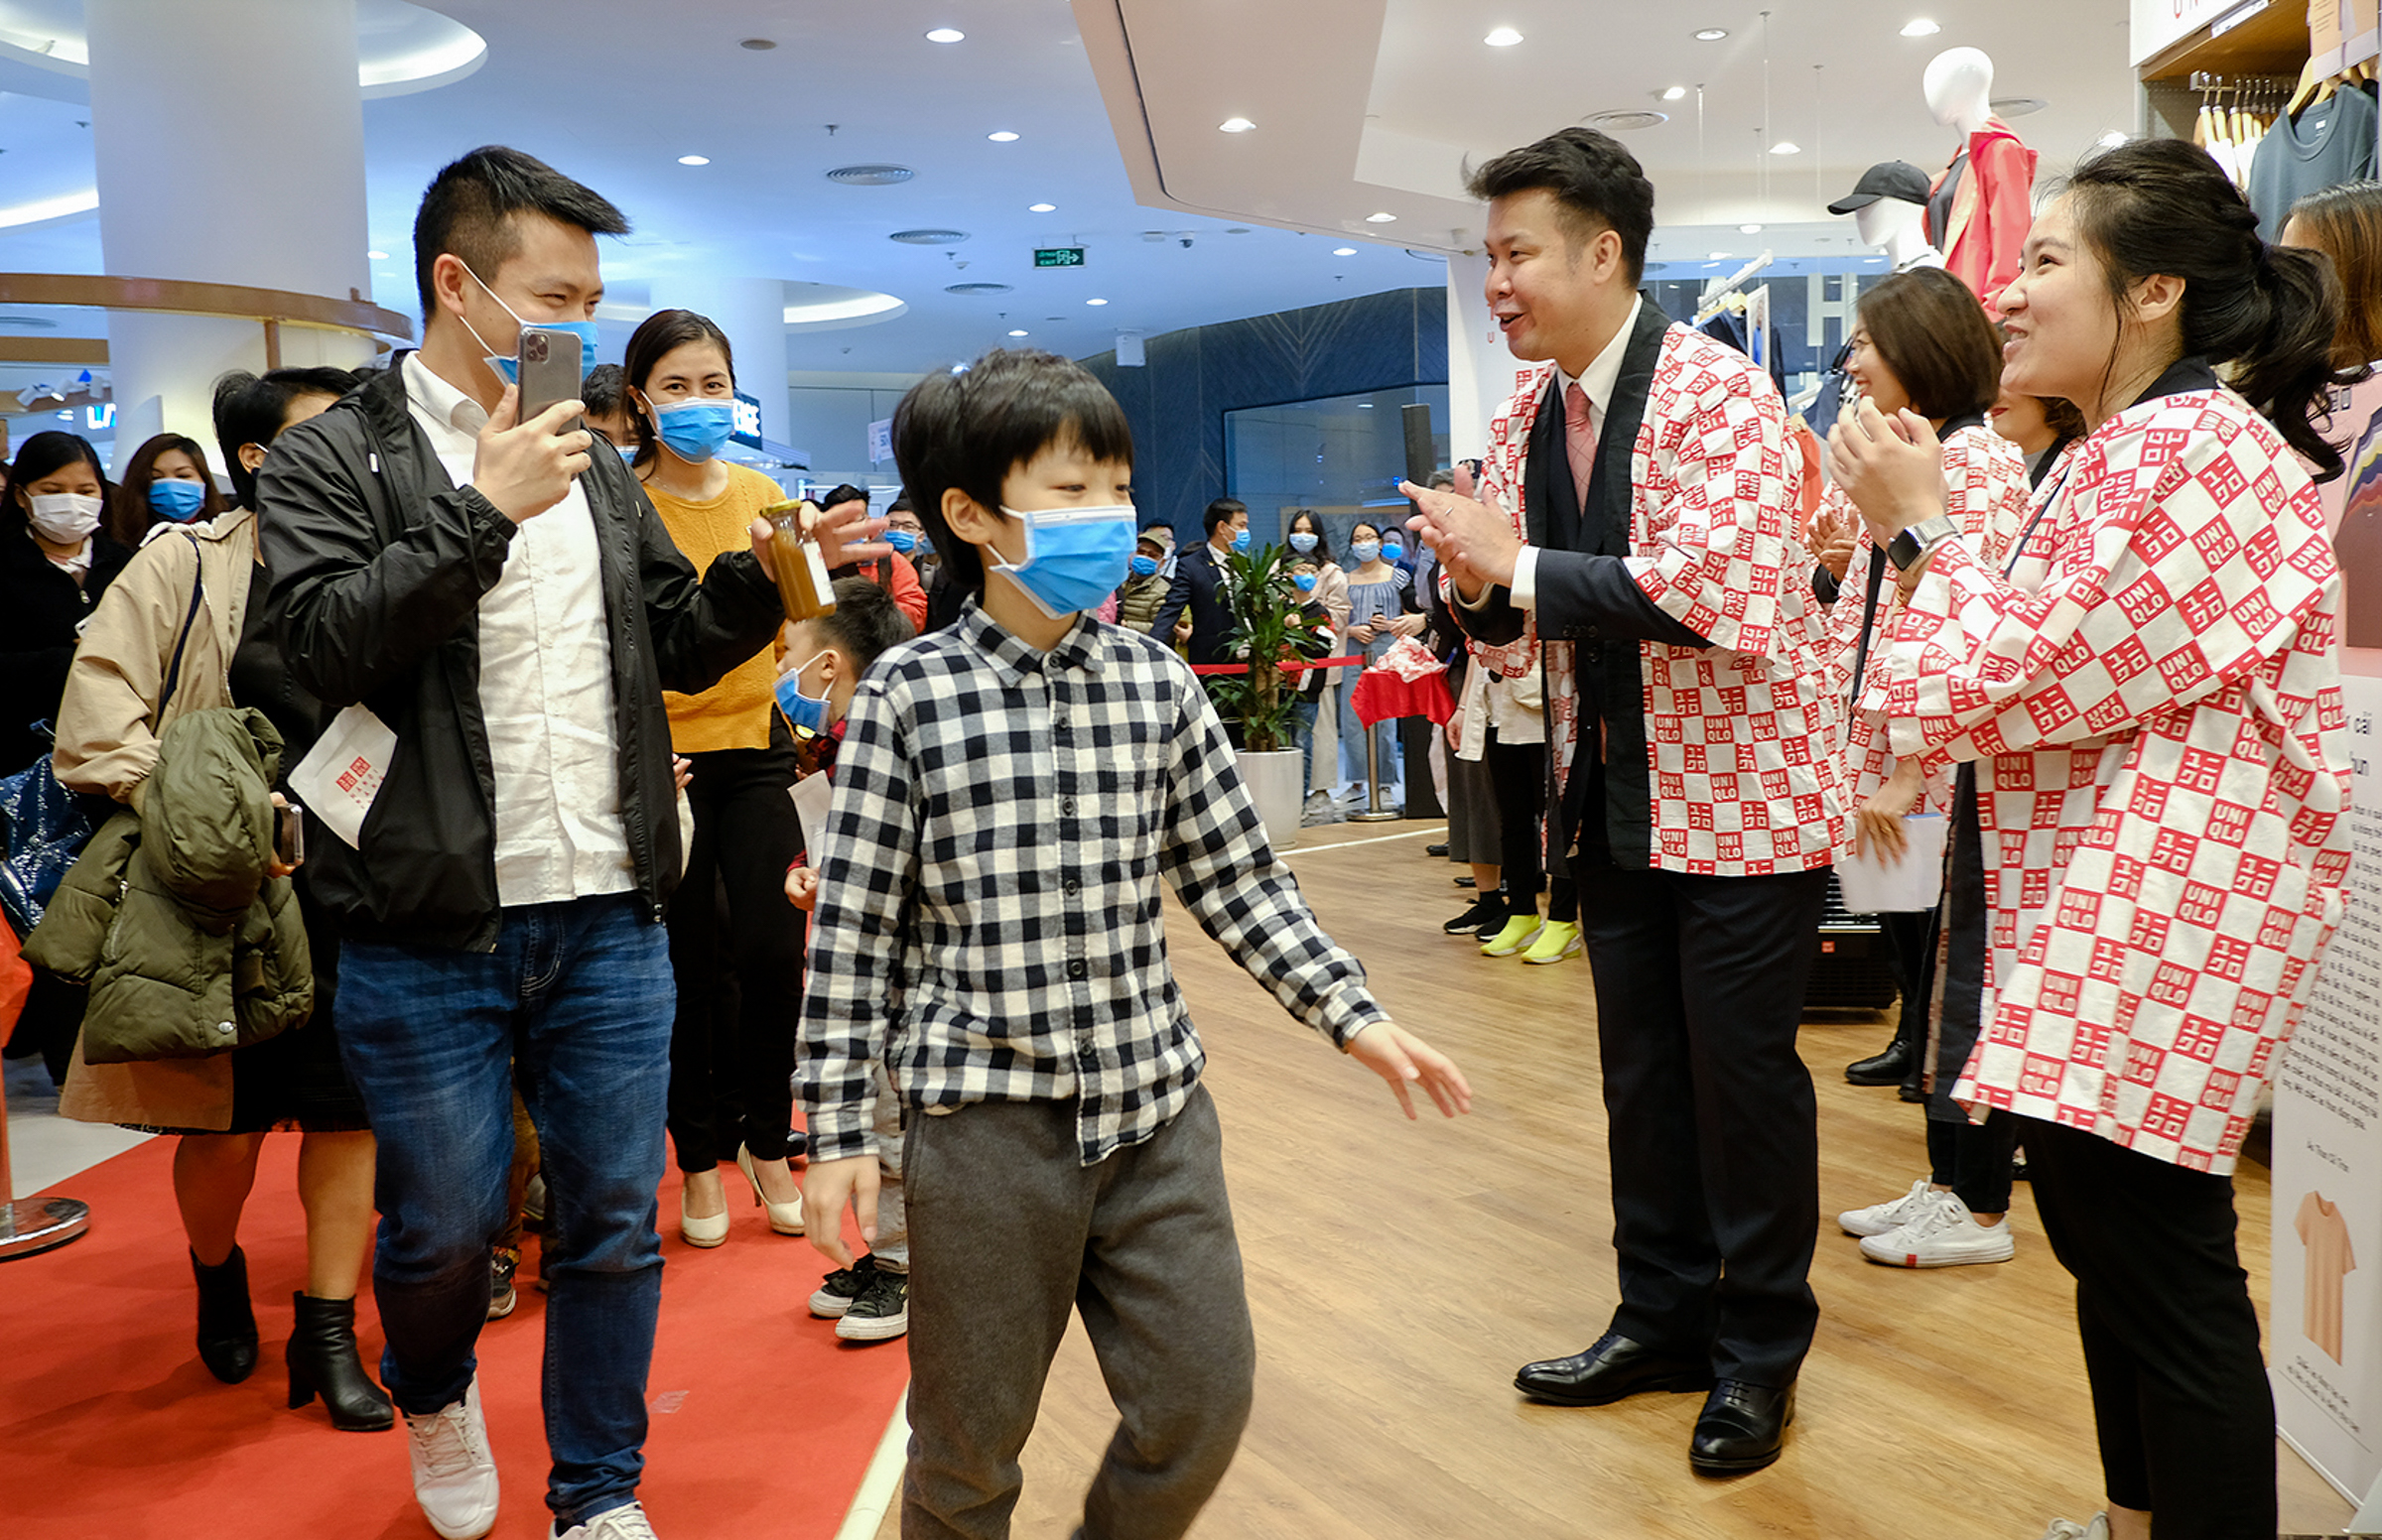 Shopaholics disregard virus outbreak as new Uniqlo store hits Hanoi